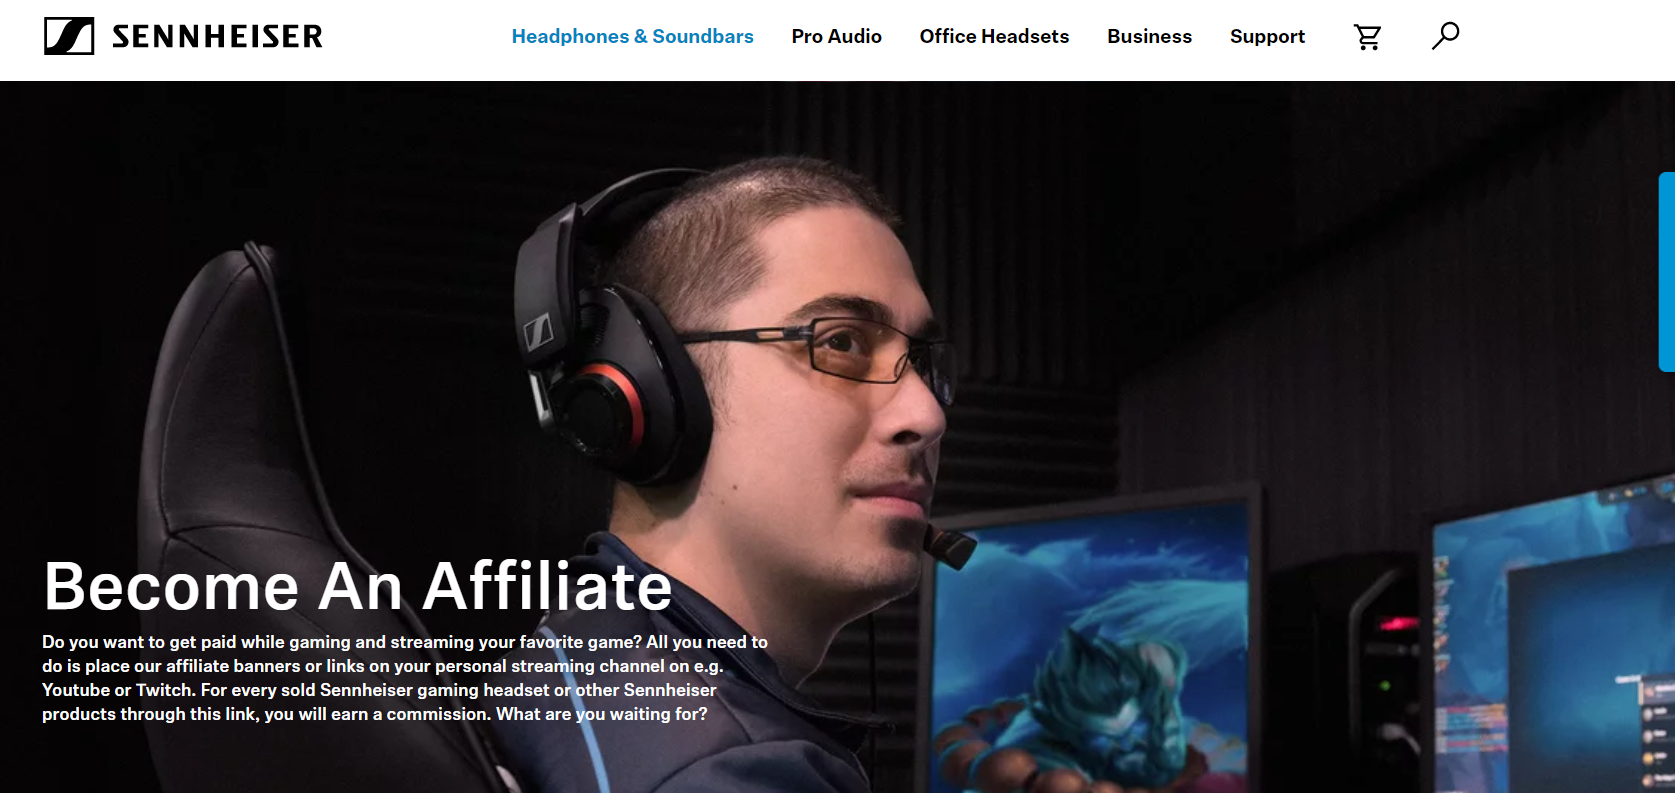 Seinheiser sell pro gamer audio headsets and soundbars. This is a screenshot of their affiliate program promotions page to attract gamers to earn commissions by referring other gamers to Sennheisser.com